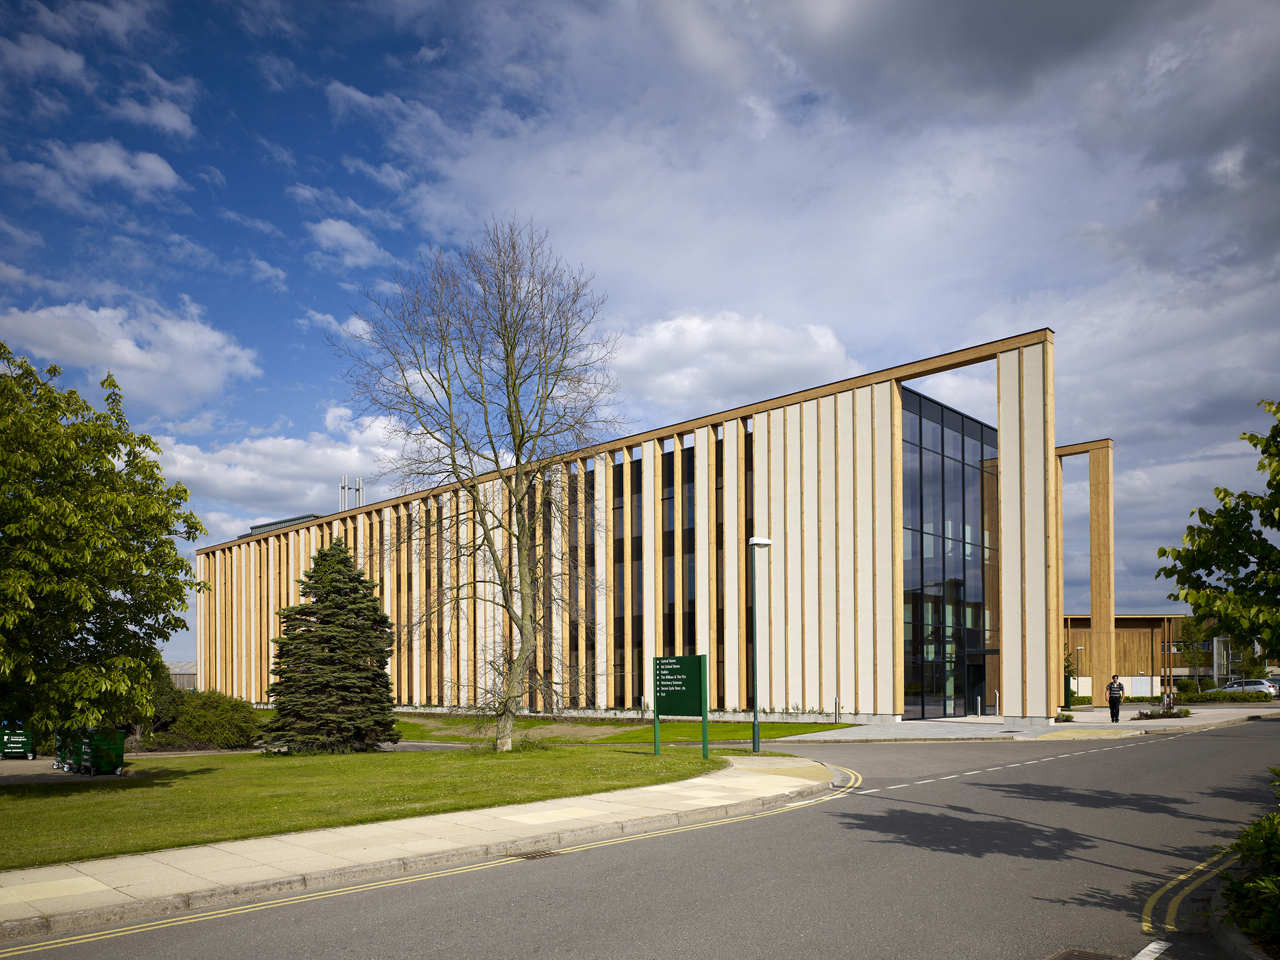 The University of Nottingham - The Gateway Building / Make Architects, © Make Architects